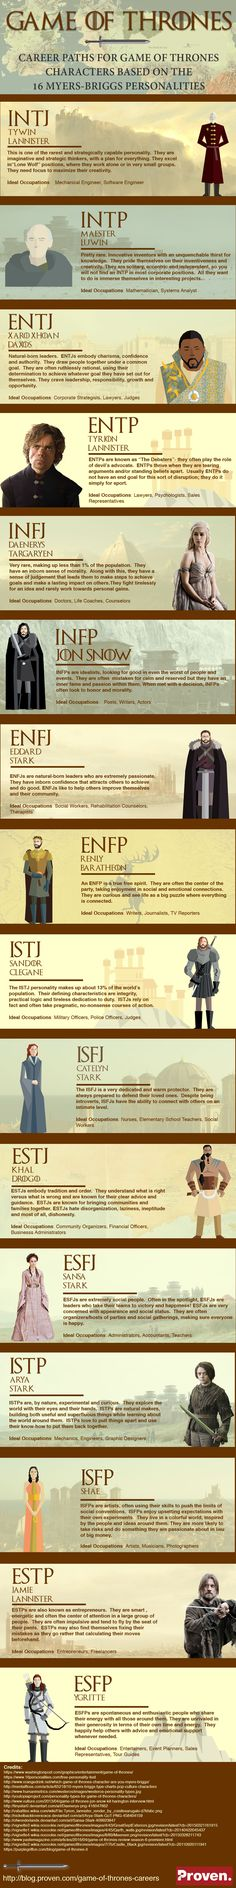 Careers for Game of Thrones Characters: 16 Career Paths Based on Myers Briggs Personality Types #Infographic #Career #GameOfThrones